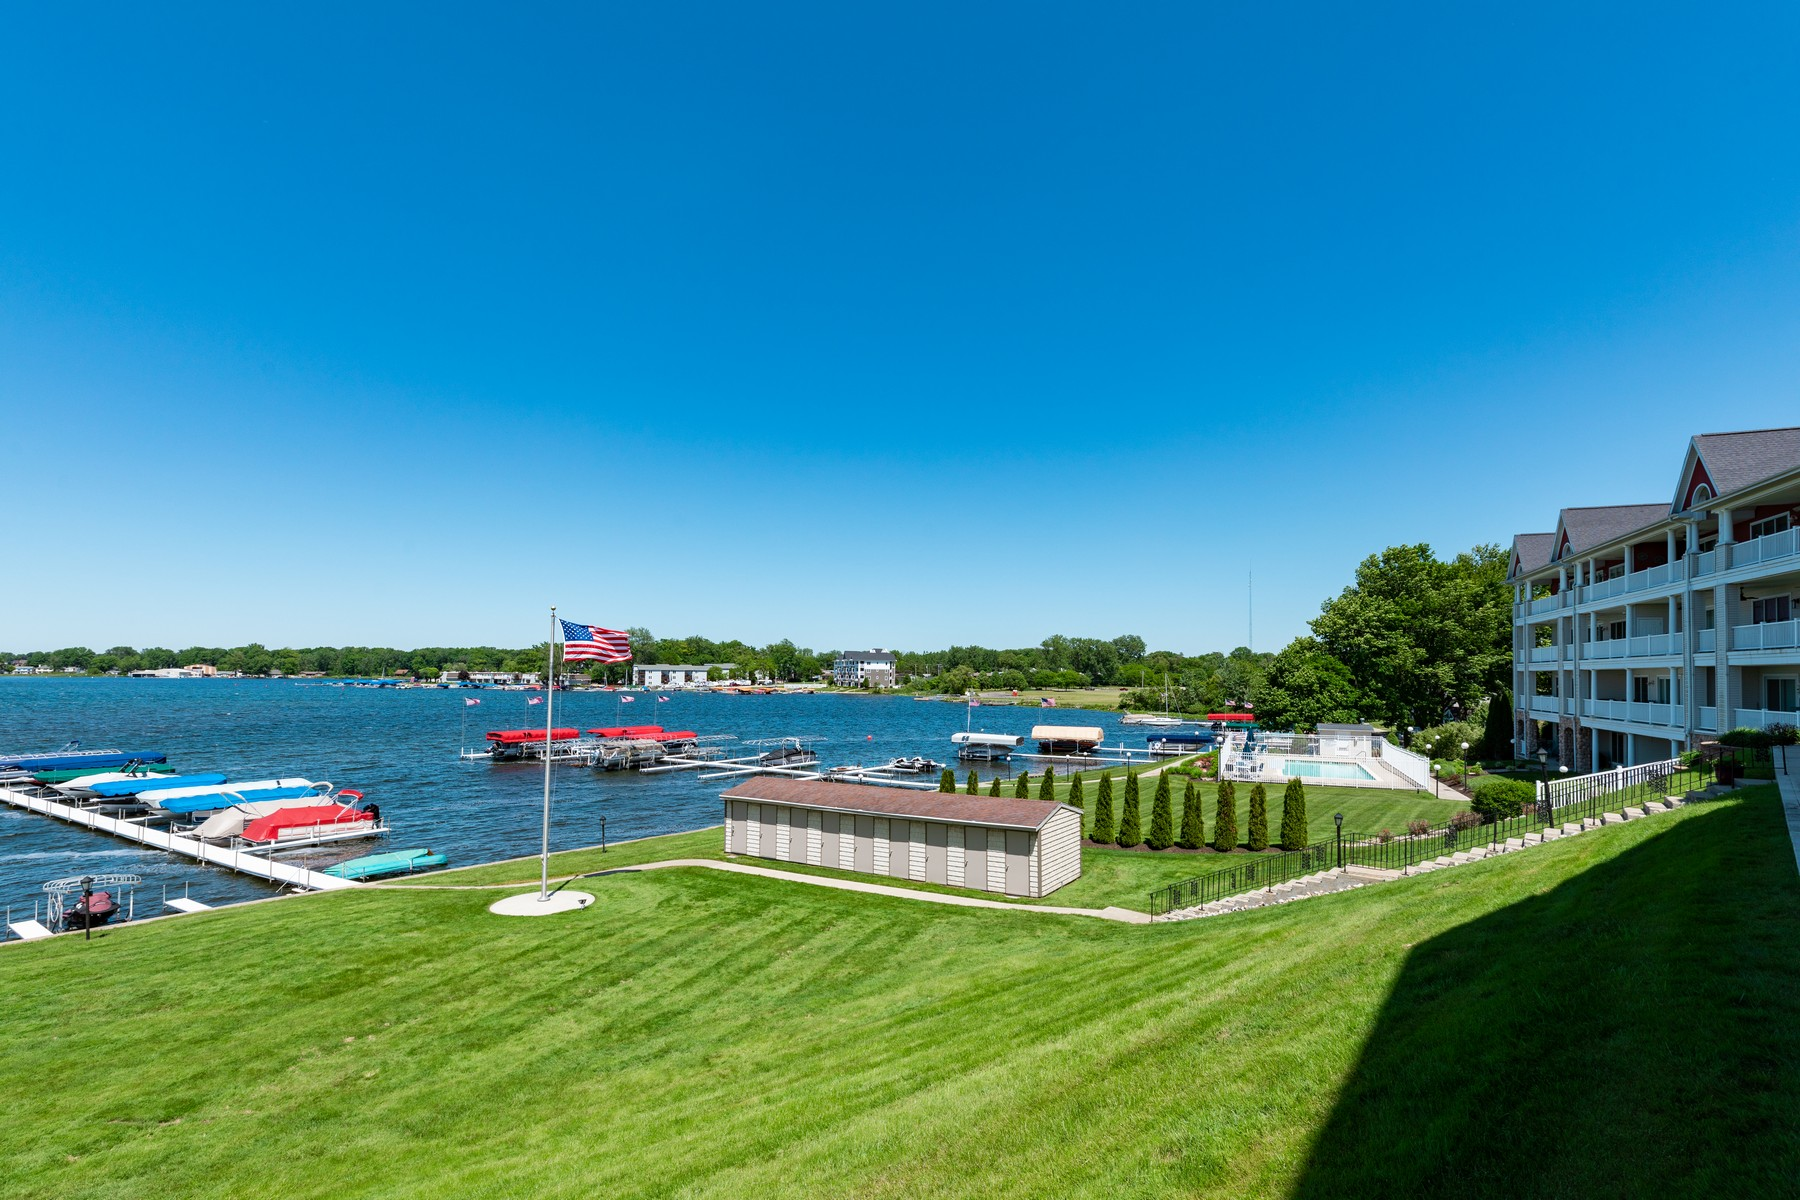 condominiums for Active at Waterfront Condo 8960 E. Hatchery Road Syracuse, Indiana 46567 United States